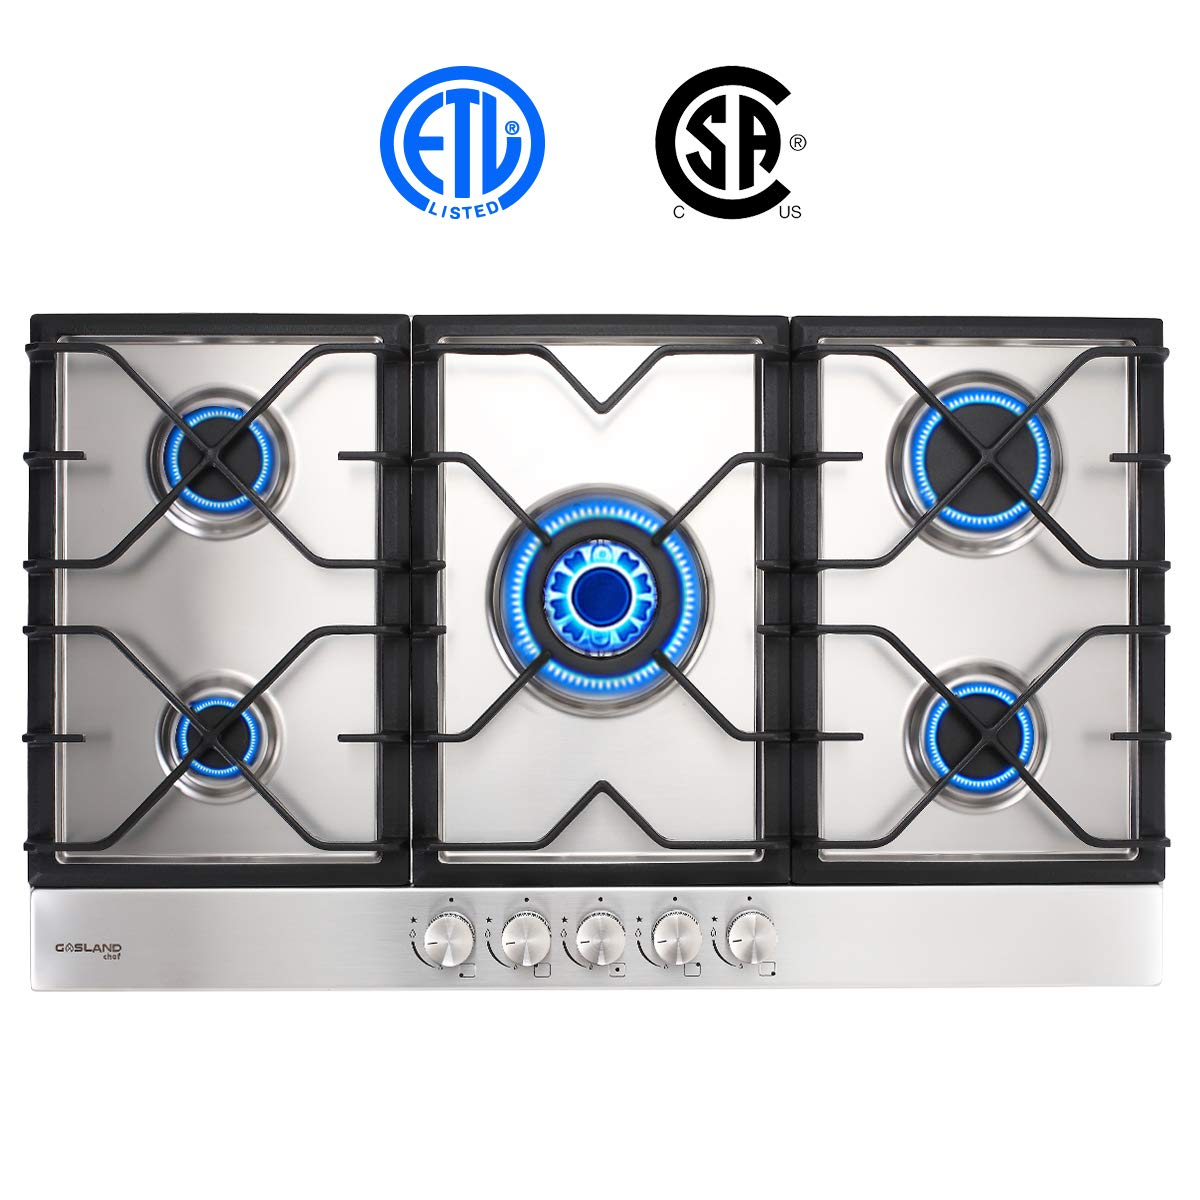 Gas Cooktop, Gasland chef GH90SF 36'' Built-in Gas Stove Top, Stainless Steel LPG Natural Gas Cooktop, Gas Stove Top with 5 Sealed Burners, ETL Safety Certified, Thermocouple Protection, Easy To Clean